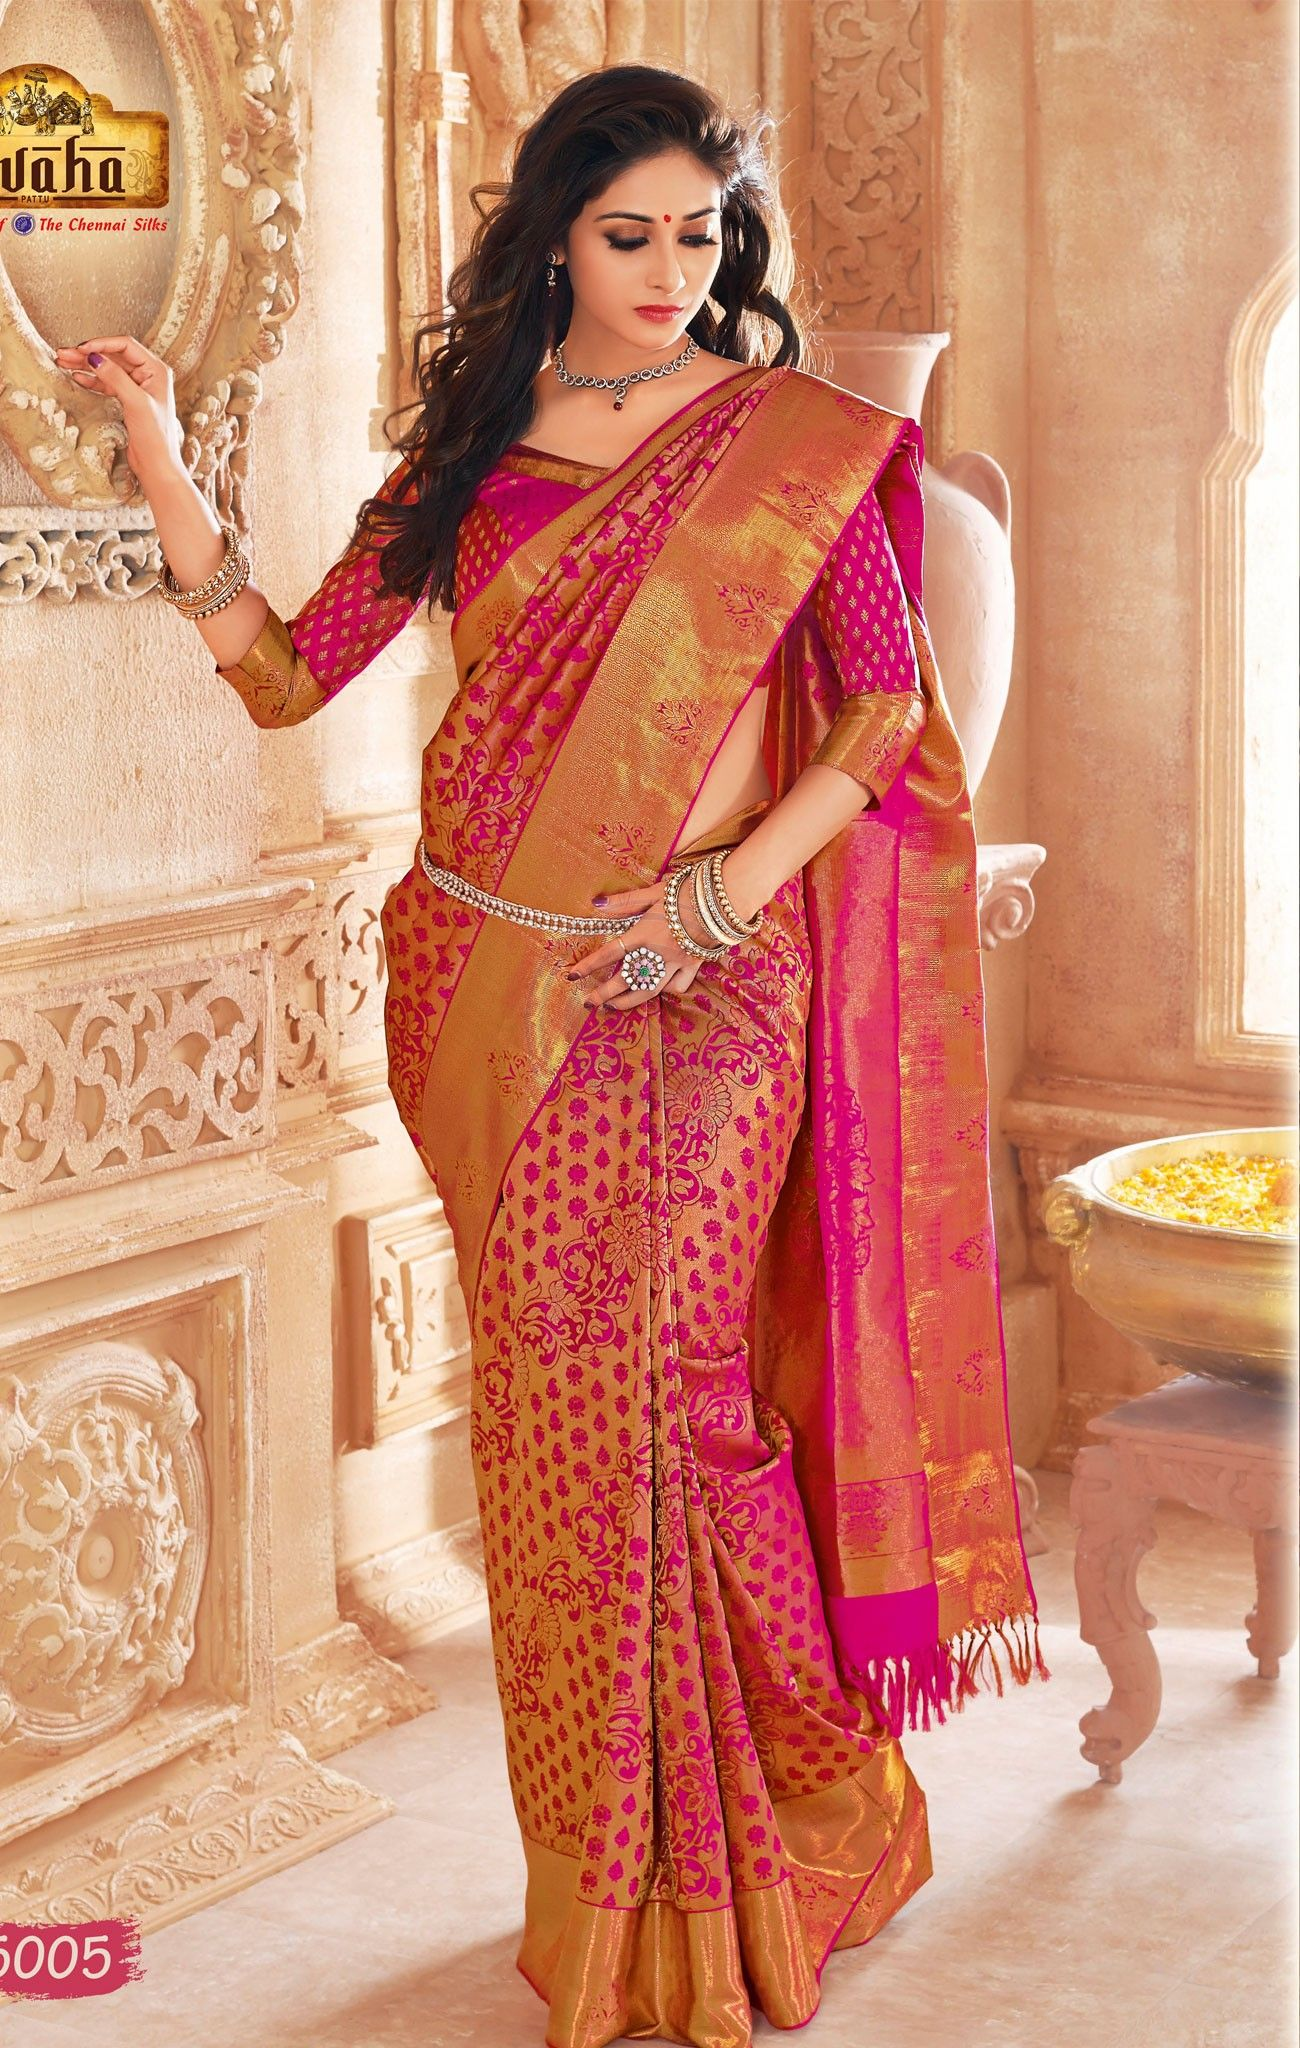 14c746225a Vivaha Branded Wedding Silk Saree VBBS5005 | Things to Wear(Sarees ...